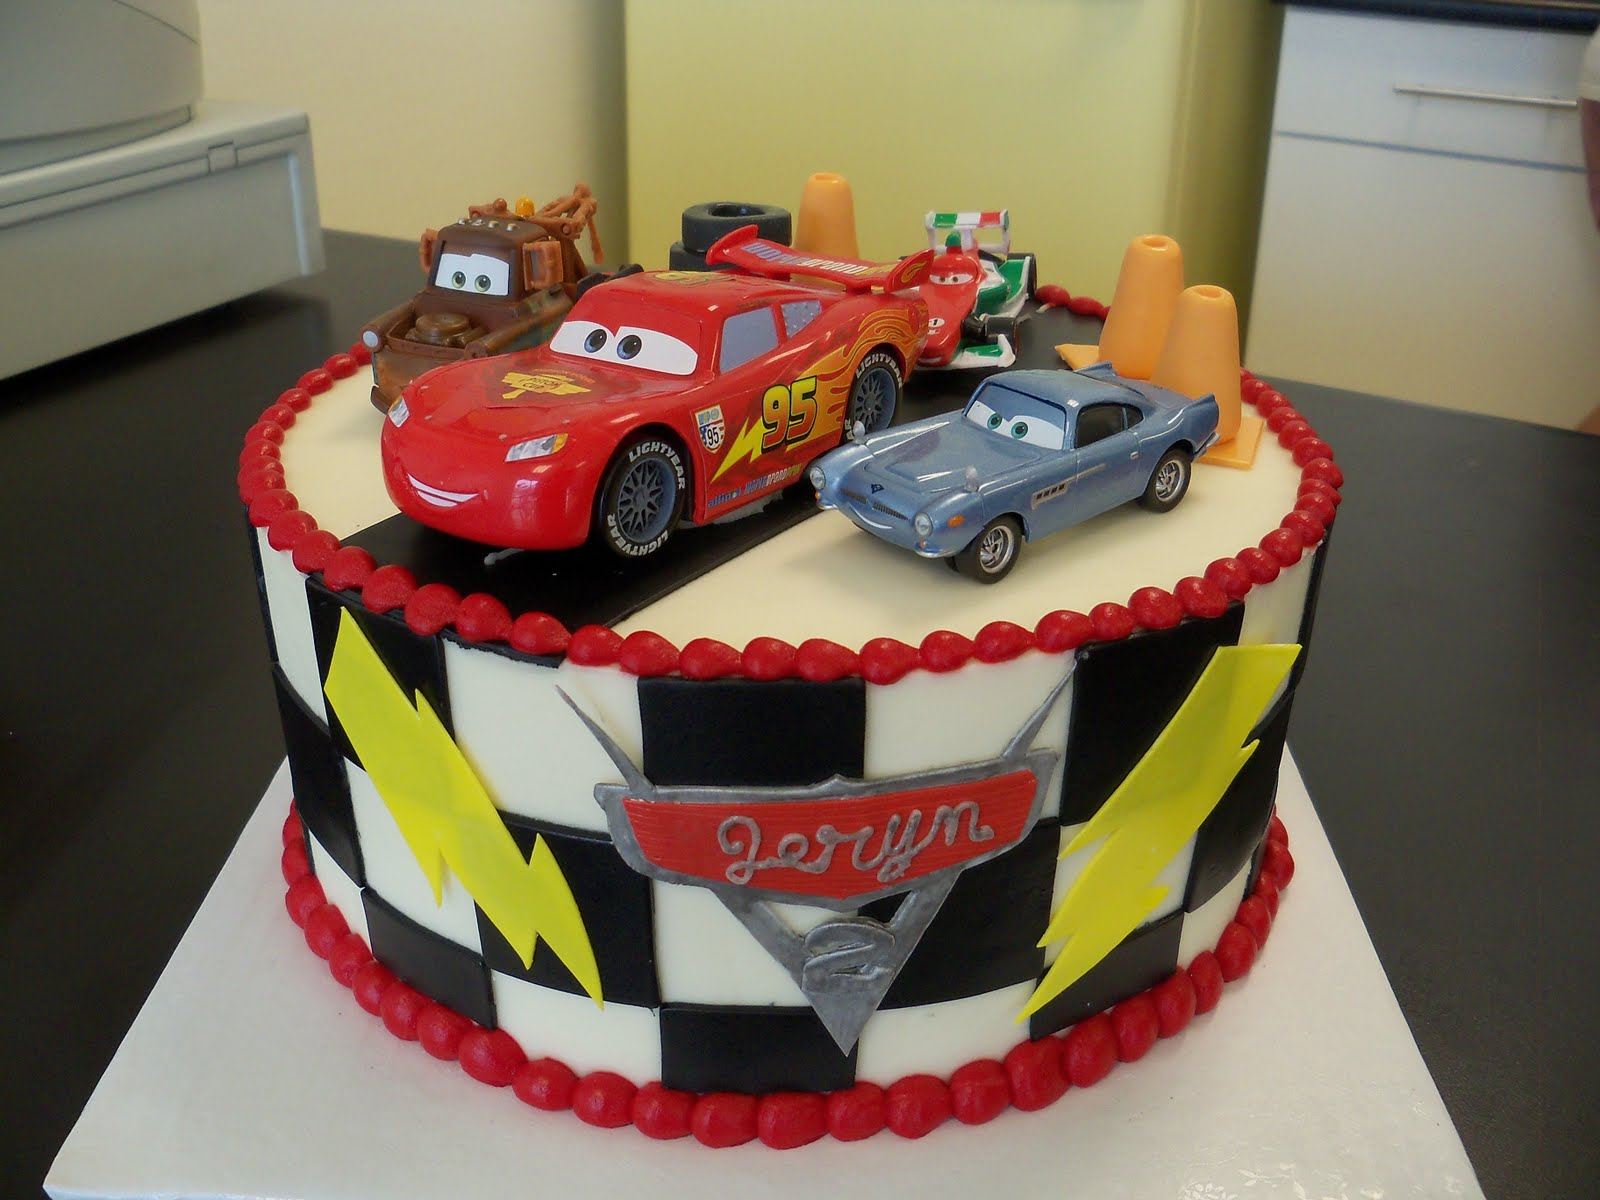 Car Cake Designs For Birthday Boy : Cars Cakes   Decoration Ideas Little Birthday Cakes